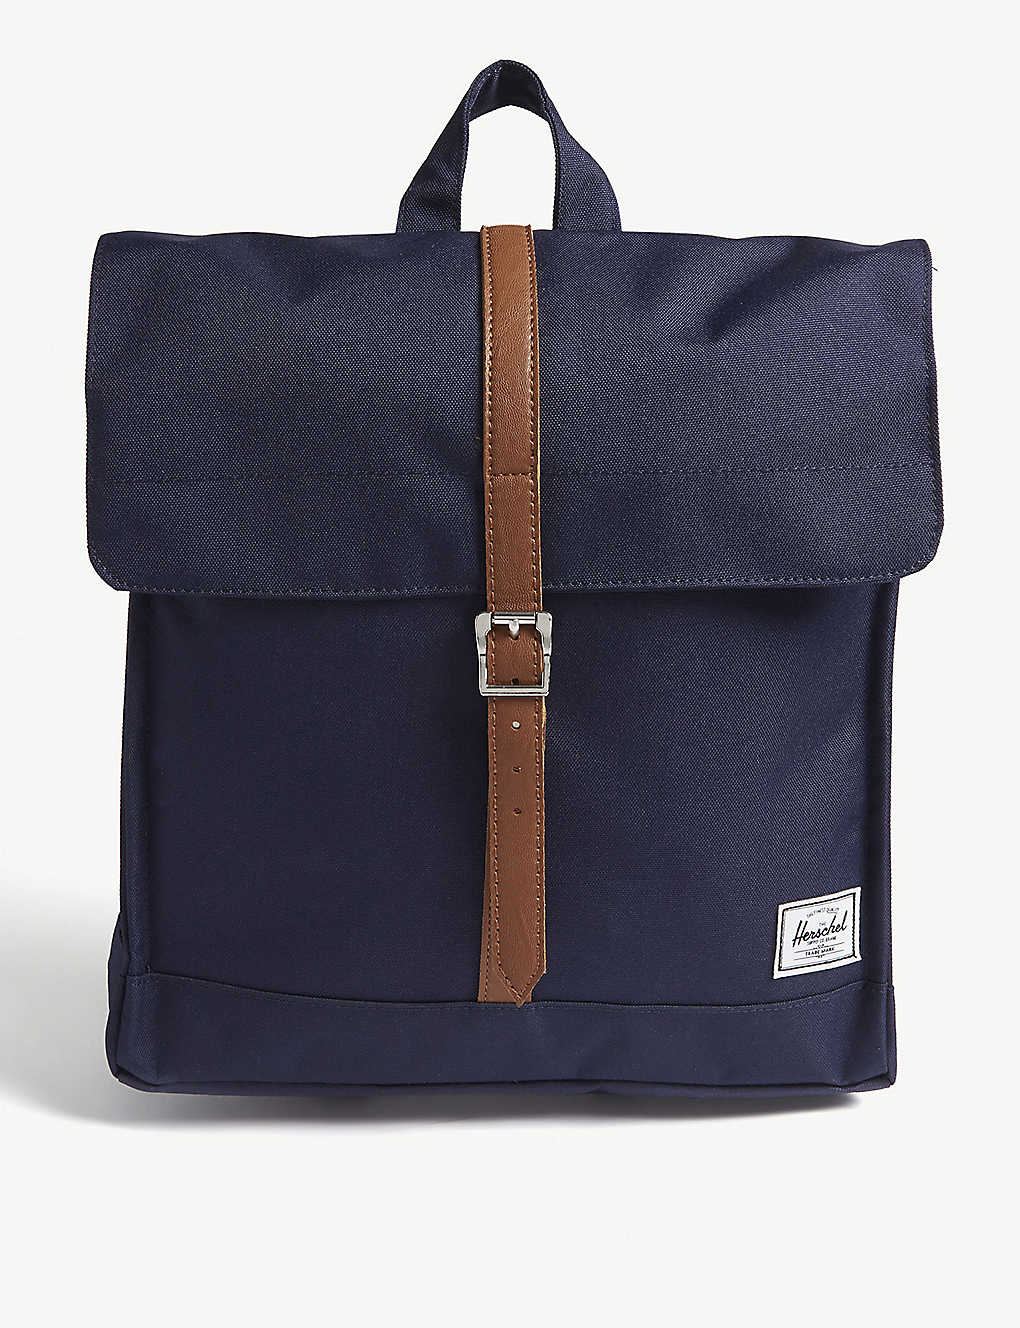 f193101a1ec HERSCHEL SUPPLY CO - City mid-volume backpack